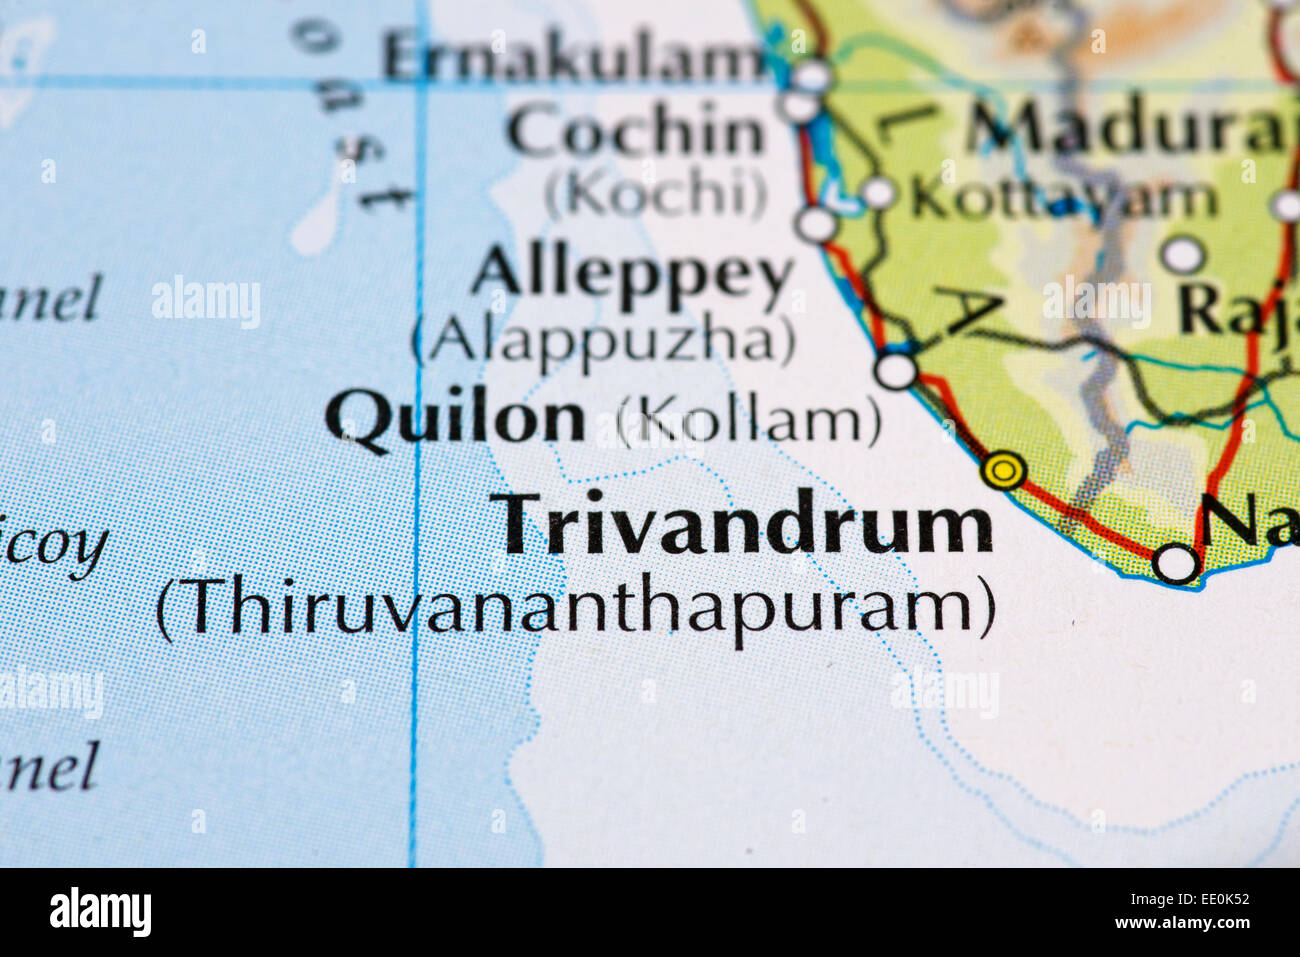 Kerala Map Stock Photos & Kerala Map Stock Images - Alamy on india cochin india, map of addis ababa ethiopia, map of cape town south africa, map of cairns australia, map of barcelona spain, map of cochin kerala, kerala india, map of albany australia, map of belfast northern ireland, best of india, map of rarotonga cook islands, map of buenos aires argentina, map of christchurch new zealand, map of durban south africa, map of cebu philippines, map of auckland new zealand, kochi india, map of beijing china, places to visit in india, map of brisbane australia,